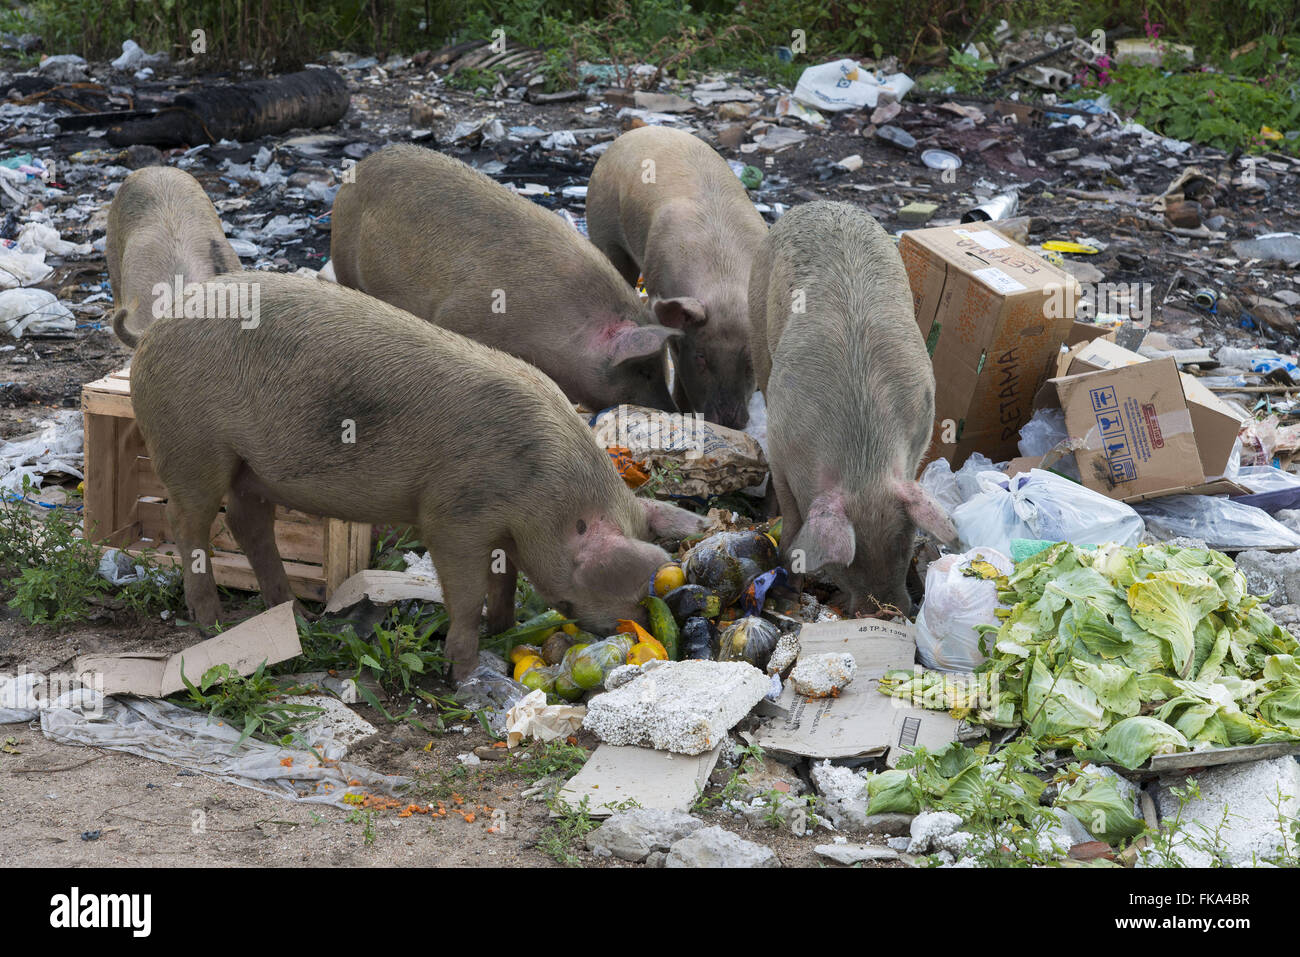 Pigs feeding on garbage dumped in a vacant lot near the city - Stock Image